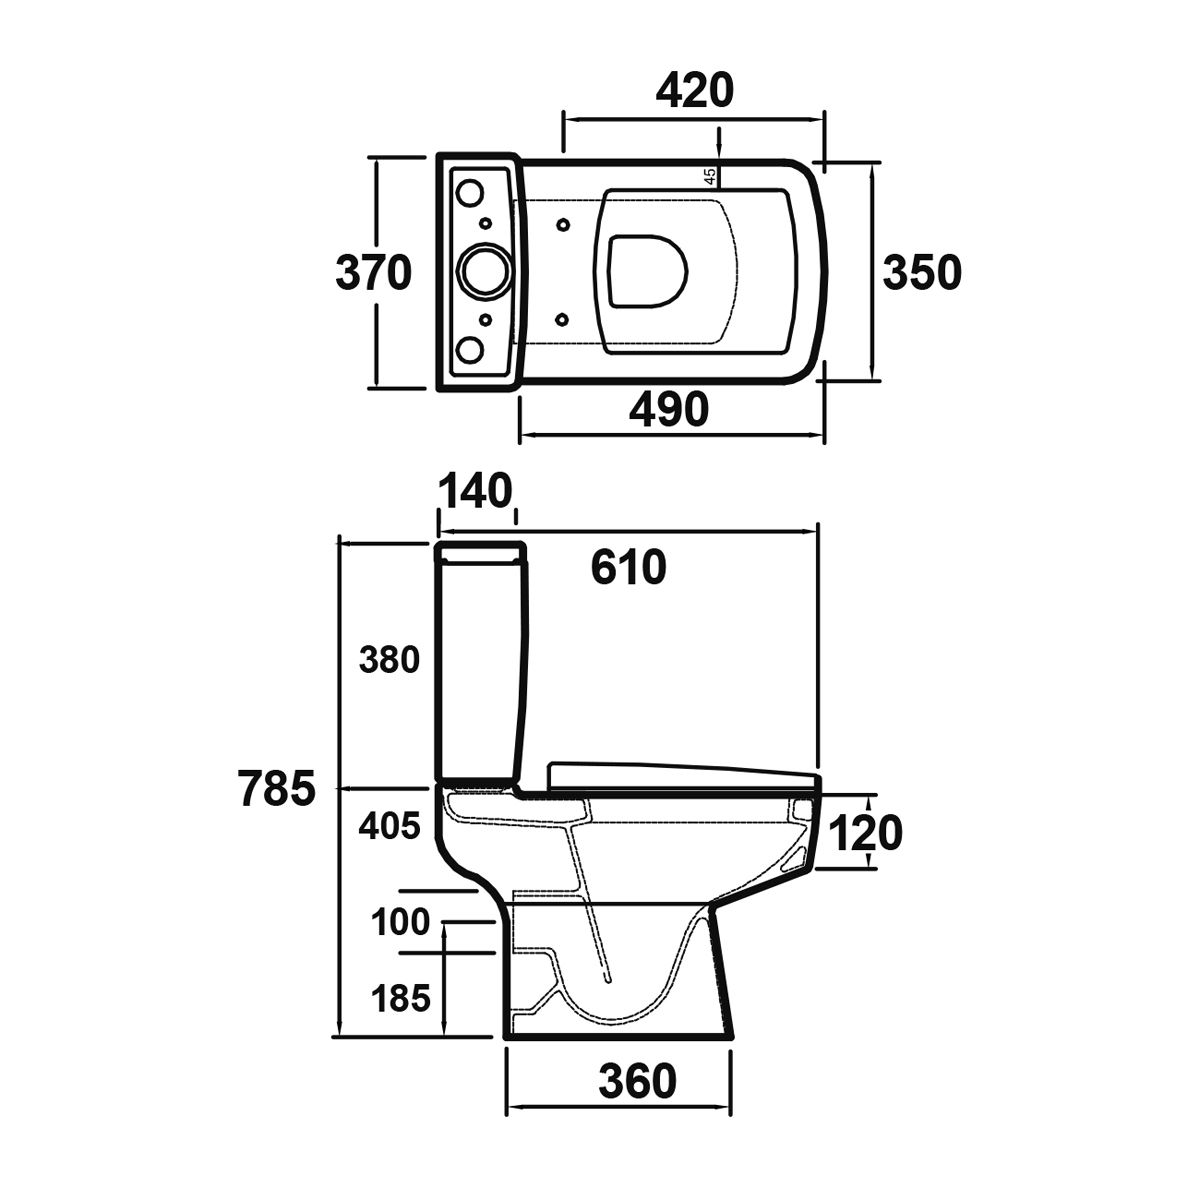 Premier Bliss Close Coupled Toilet Dimensions